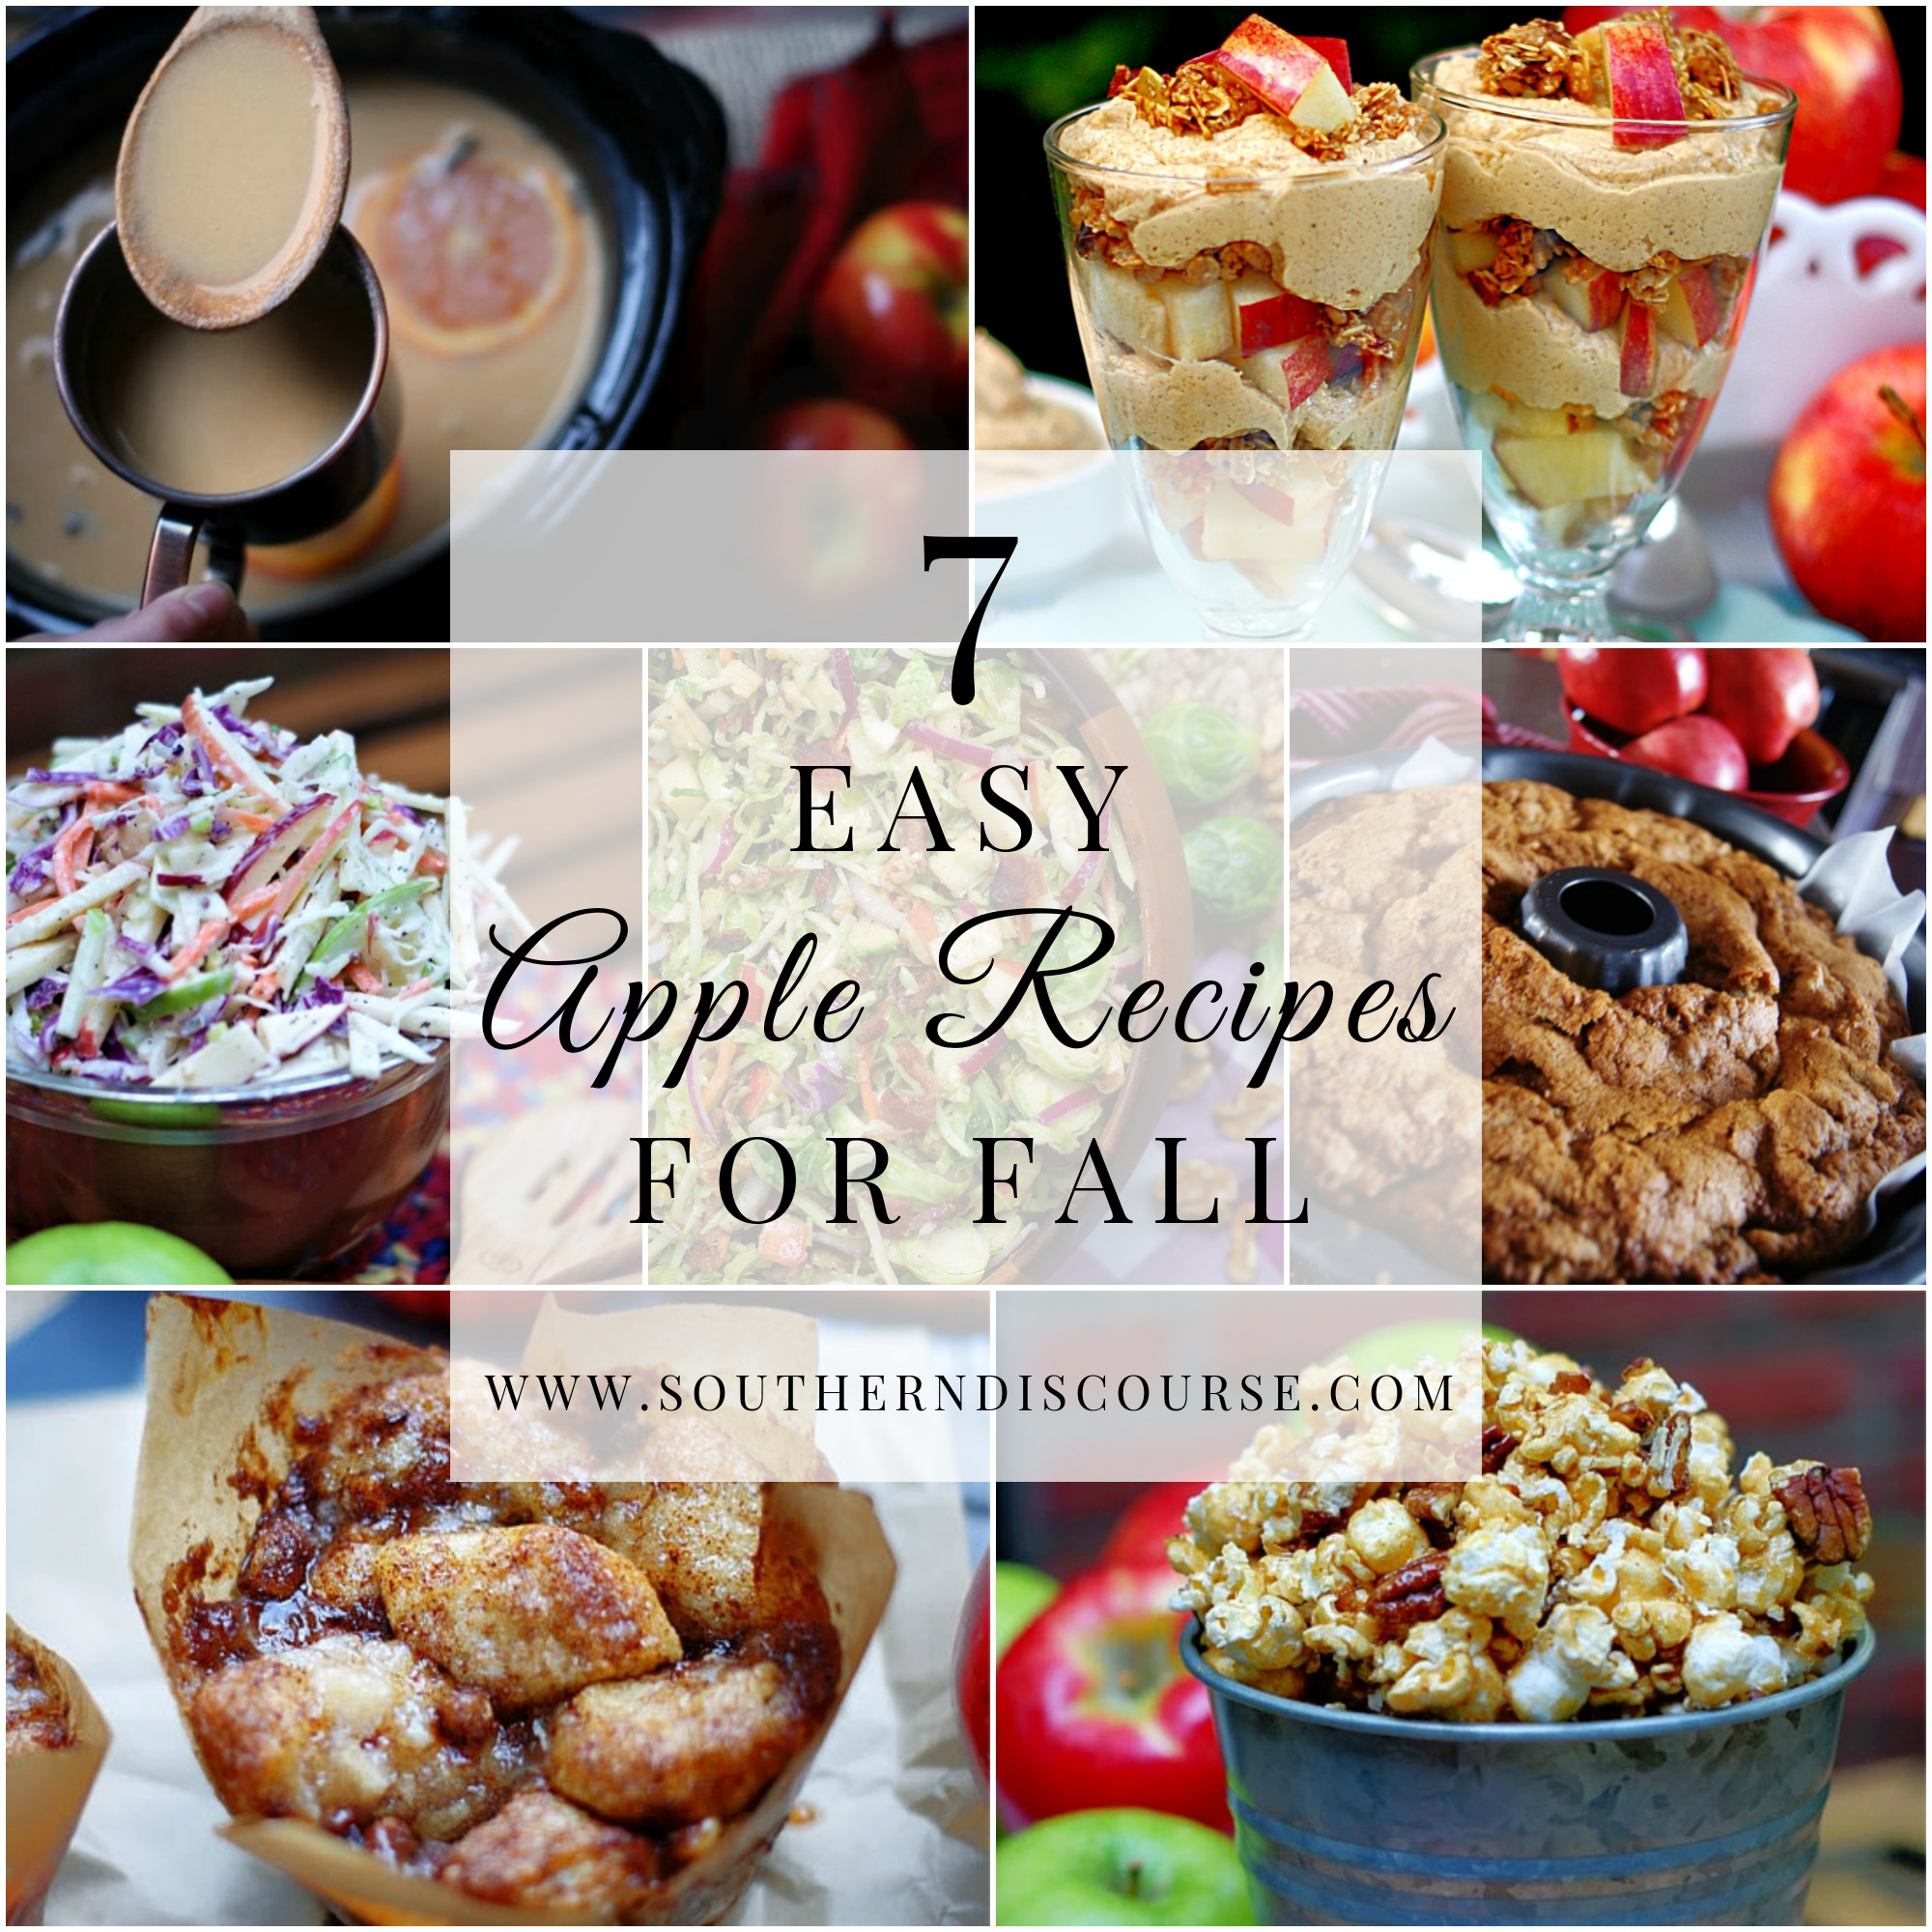 Easy Apple Recipes for Fall Collage